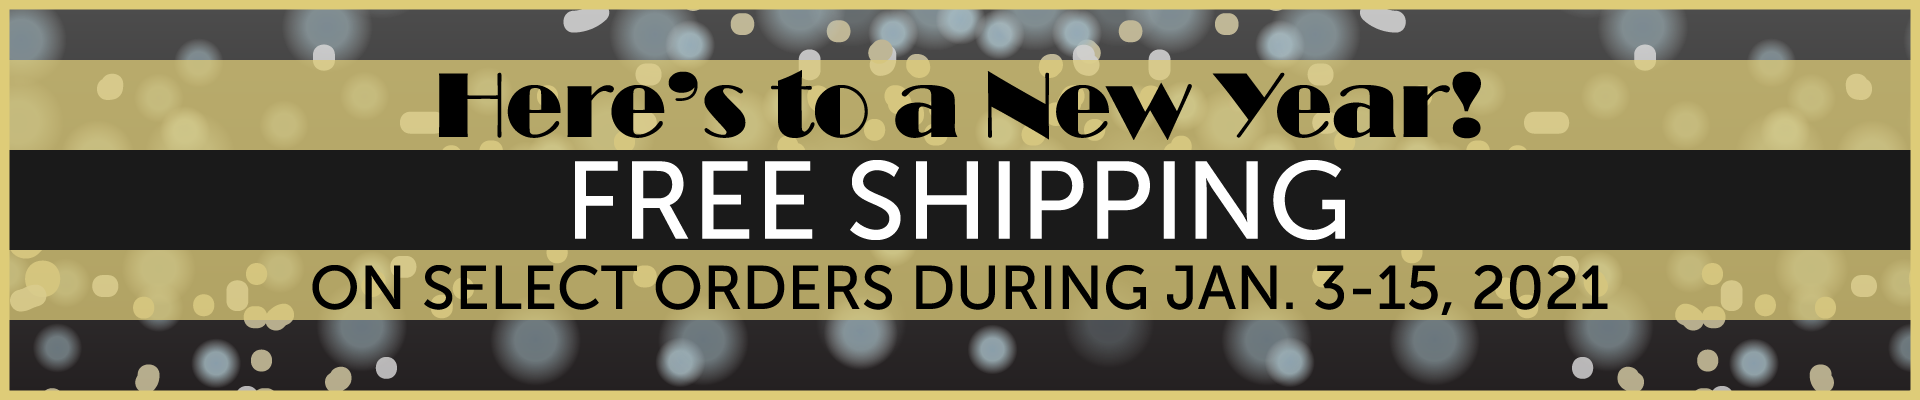 Start the New Year with Free Shipping